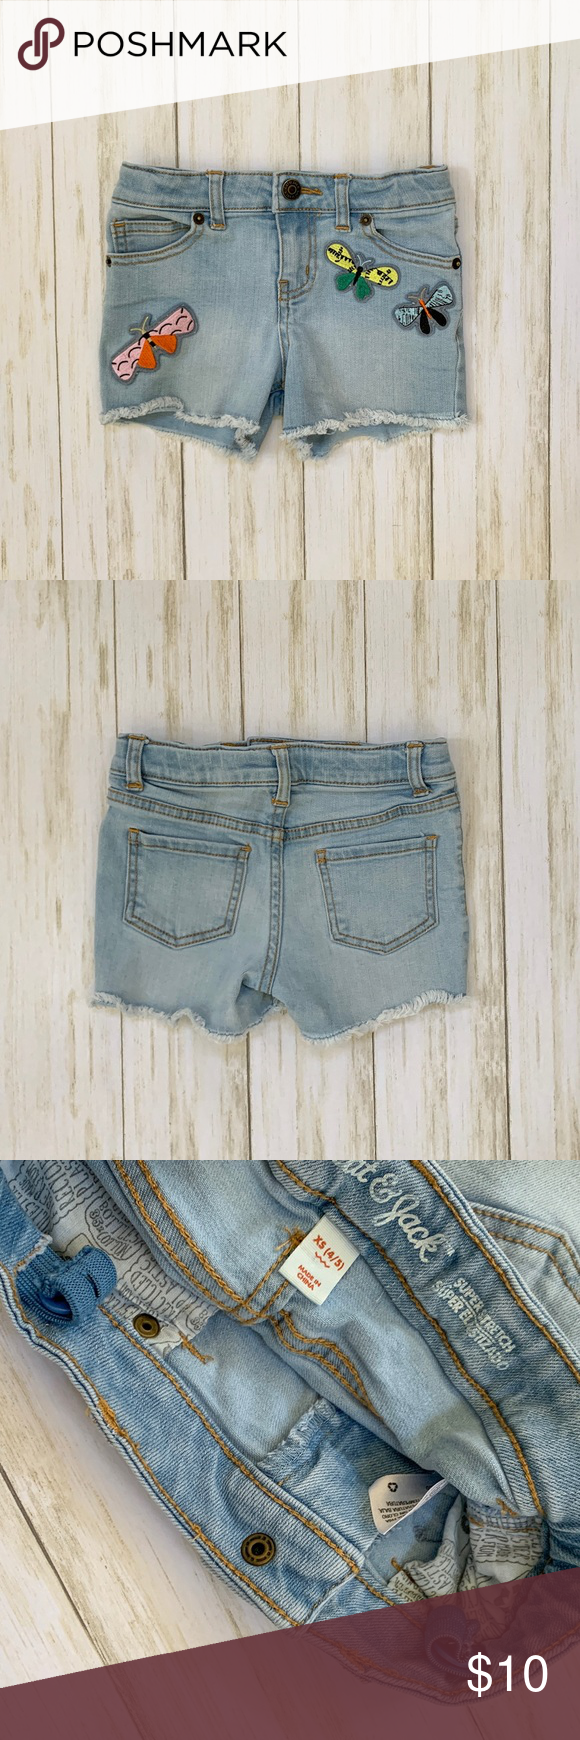 Cat & Jack Dragonfly Denim Cutoff Shorts GUC Cat & Jack Dragonfly Denim Cutoff Short  Size XS (4/5). Some wash wear. Adjustable waistband.   Cat & Jack Dragonfly Denim Cutoff Shorts GUC Cat & Jack Dragonfly Denim Cutoff Short  Size XS (4/5). Some wash wear. Adjustable waistband. #denimcutoffshorts